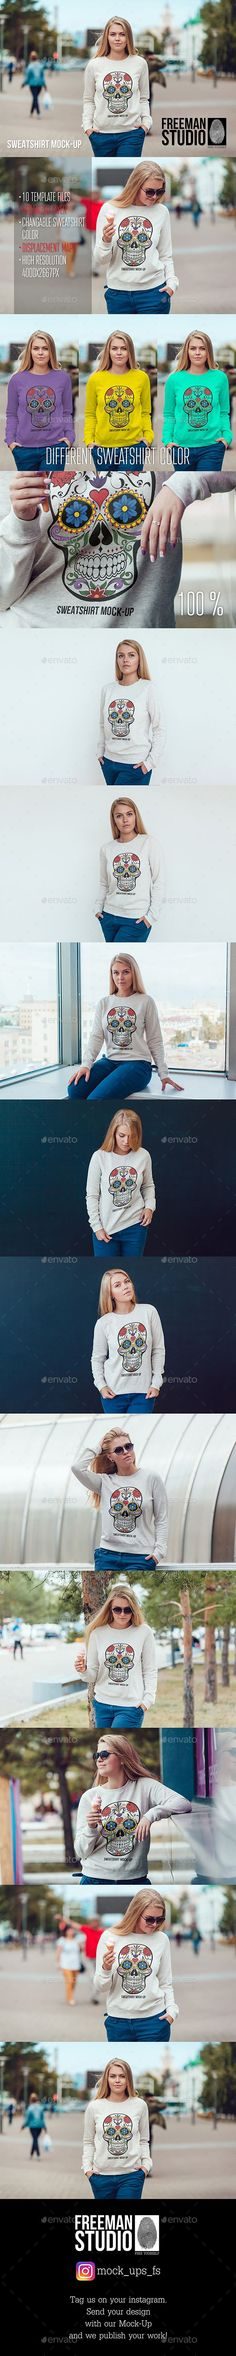 Sweatshirt Mock-Up by Freeman_Studio | GraphicRiver